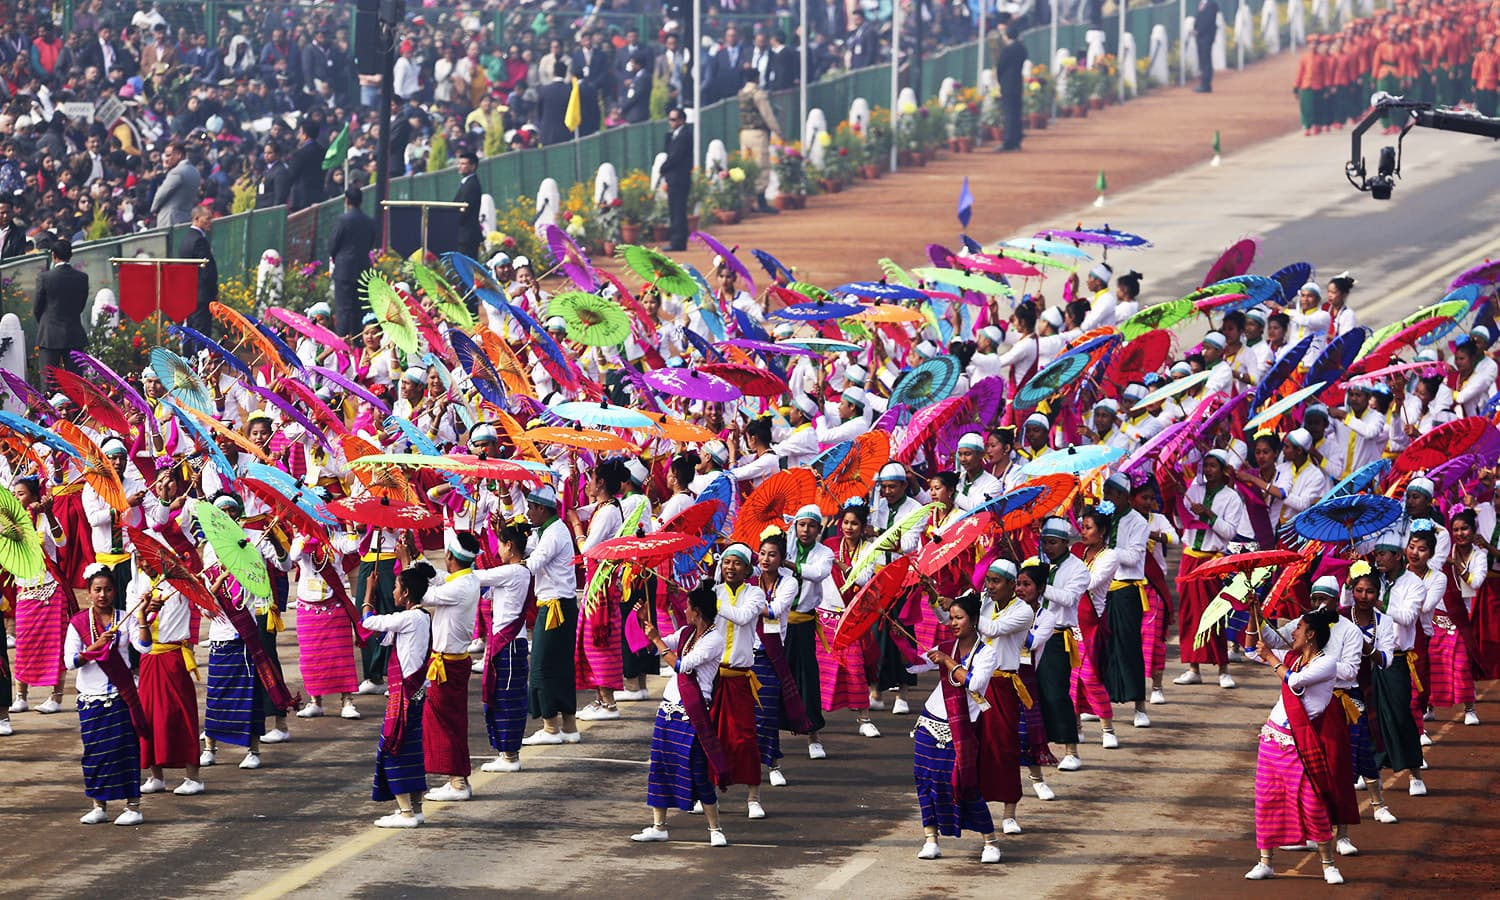 India cultural artists perform at Rajpath, the ceremonial boulevard, during Republic Day parade in New Delhi.—AP